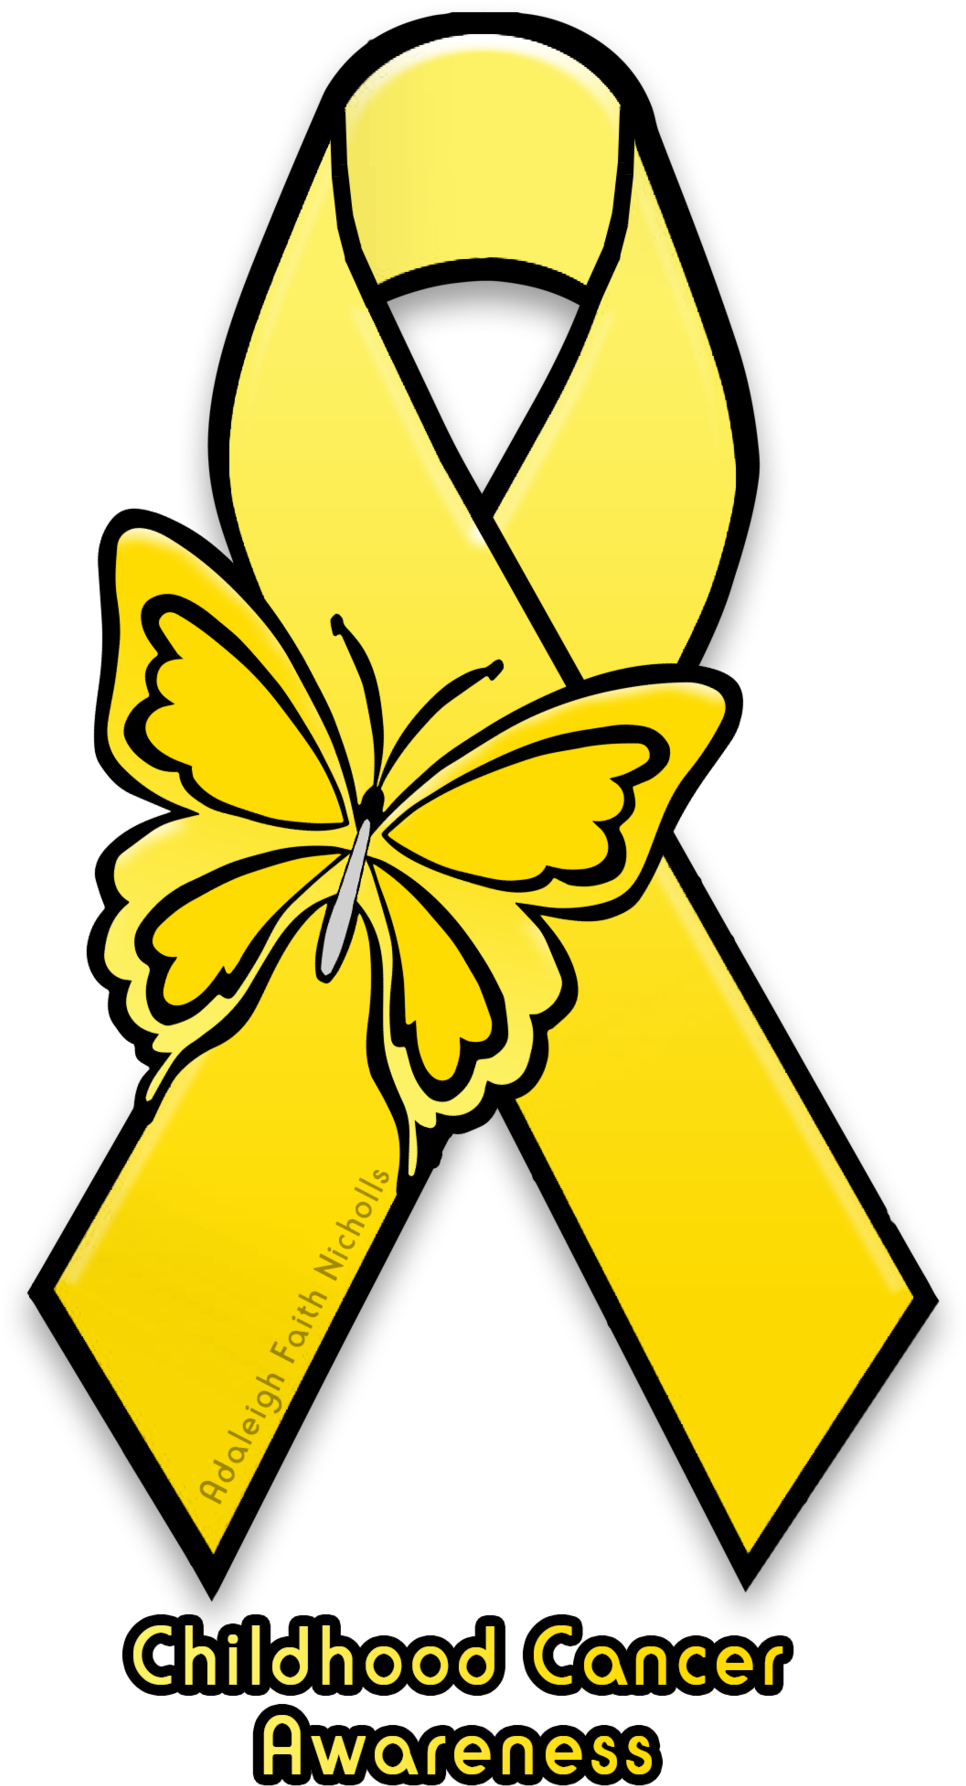 Cancer clipart childhood cancer. Adaleighfaith awareness ribbon mental